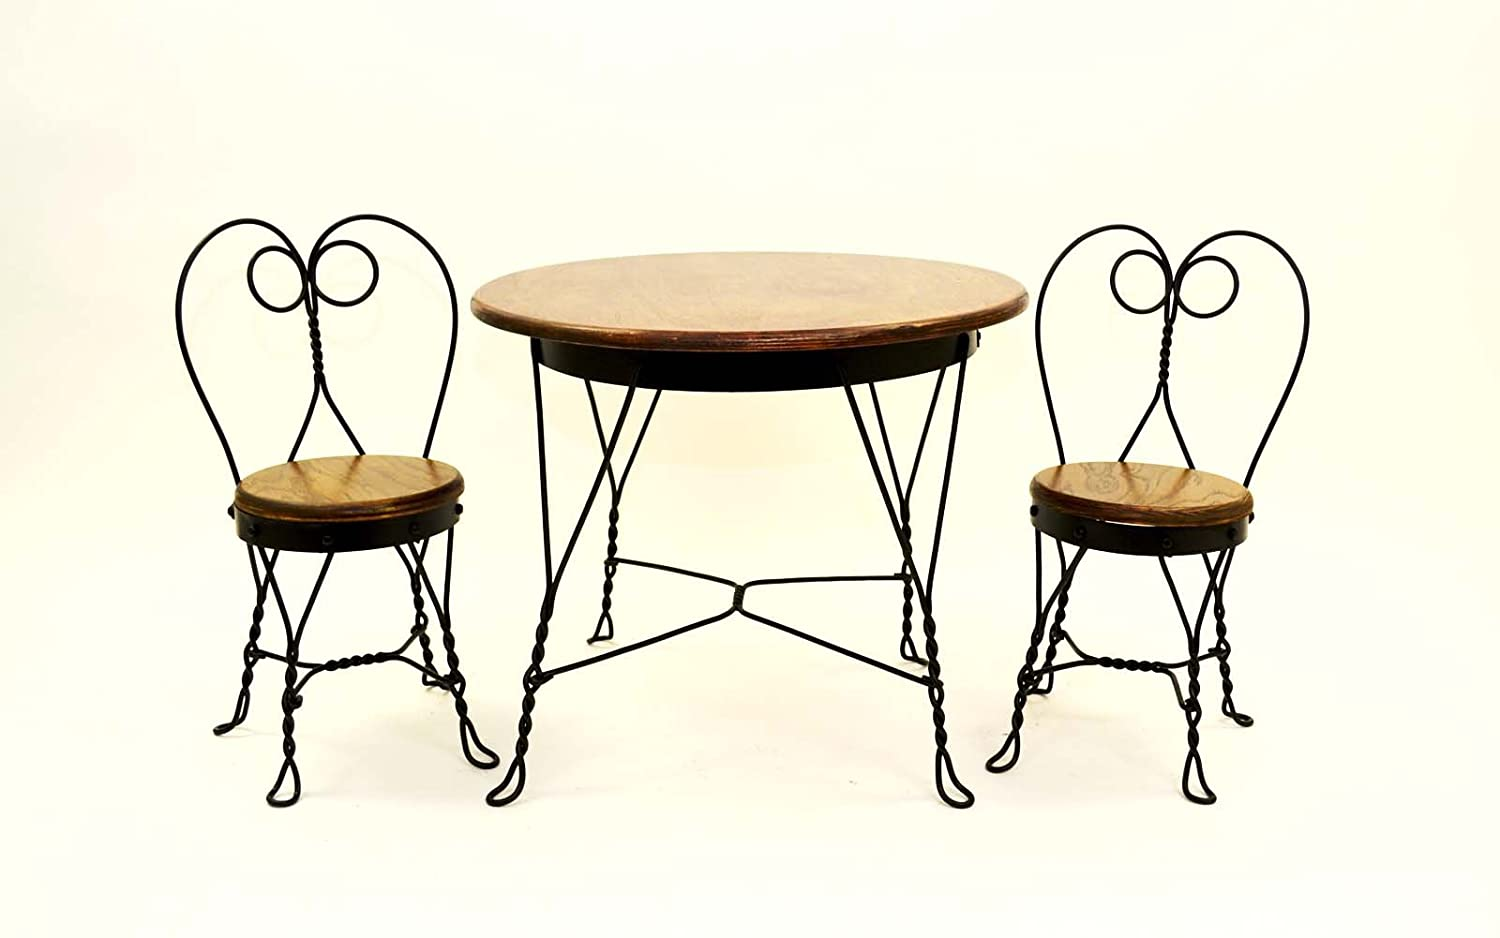 Amazon.com: Antique Reproduction Childs Ice Cream Parlor Furniture Set.  Table And 2 Chairs. Made The Old Fashioned Way, With Only Bends And Rivets,  ...